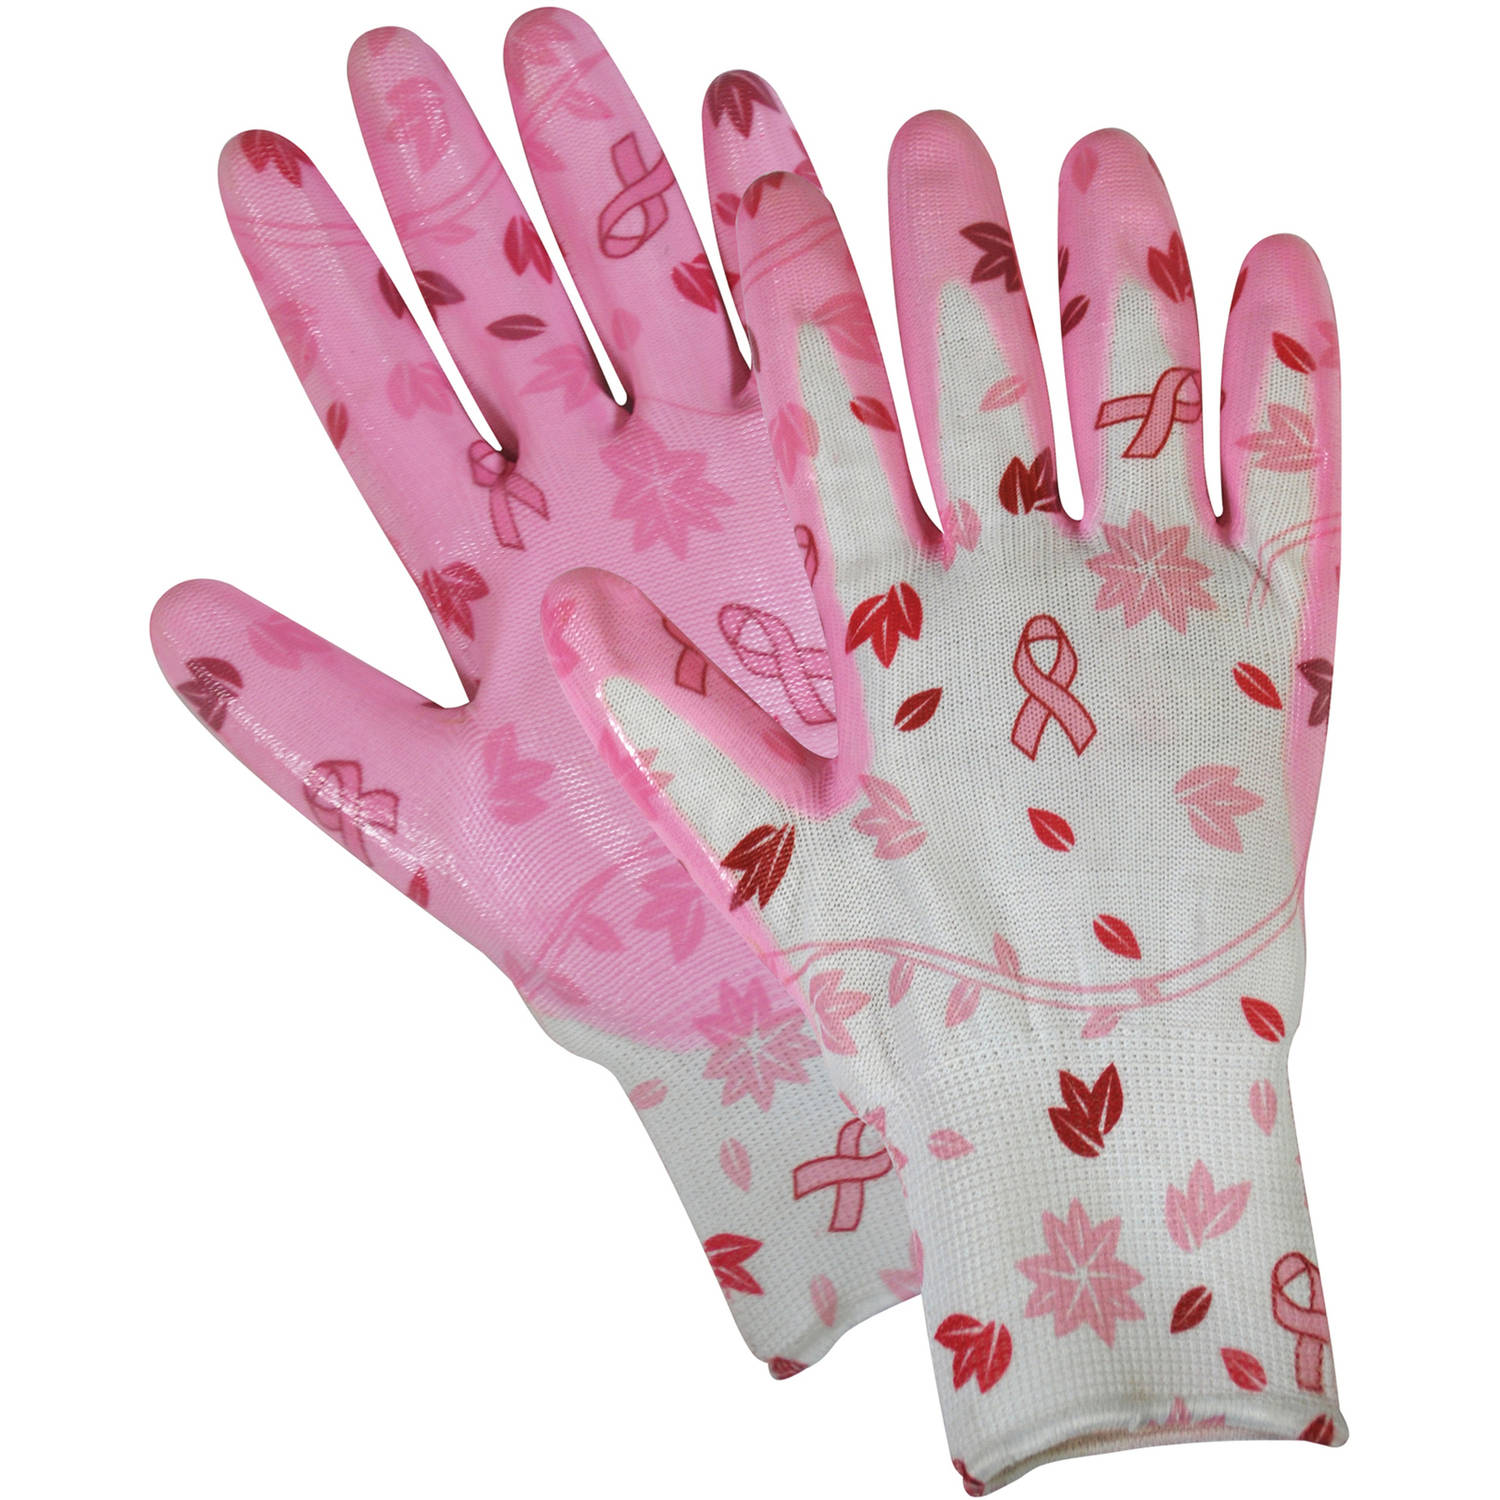 Magid Glove BC314TL Large Breast Cancer Foundation Nitrile-Coated Utility Gloves